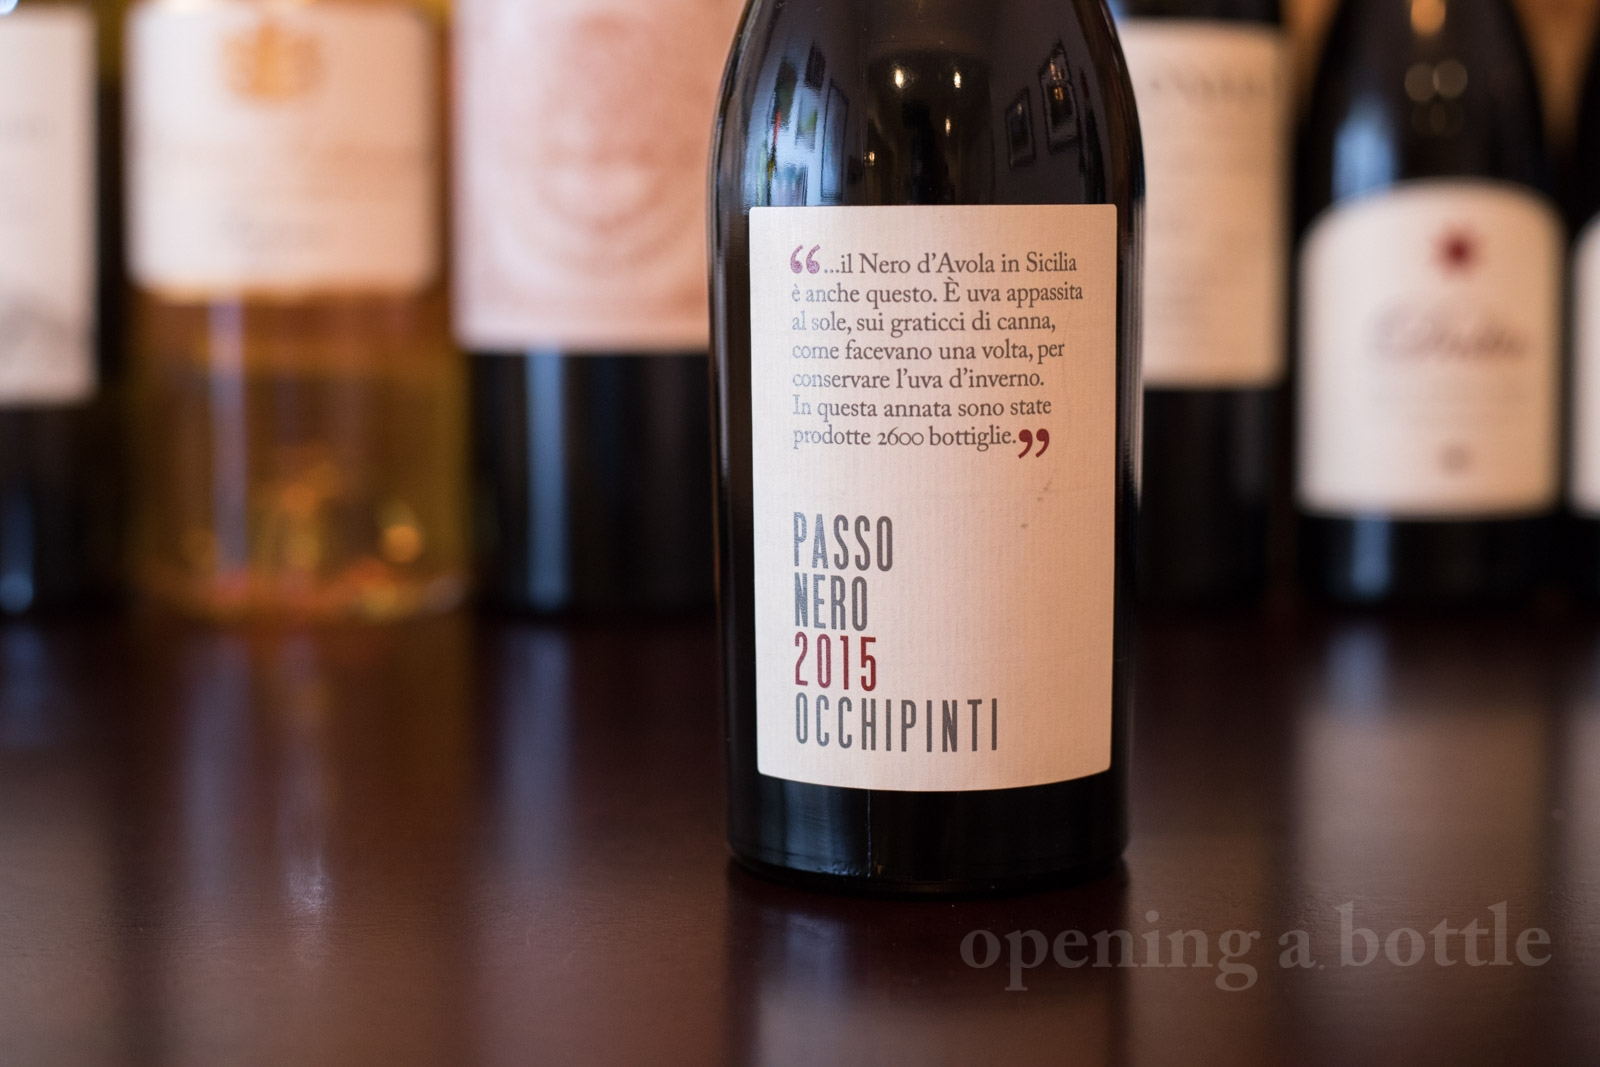 2015 Arianna Occhipinti Passo Nero ©Kevin Day/Opening a Bottle